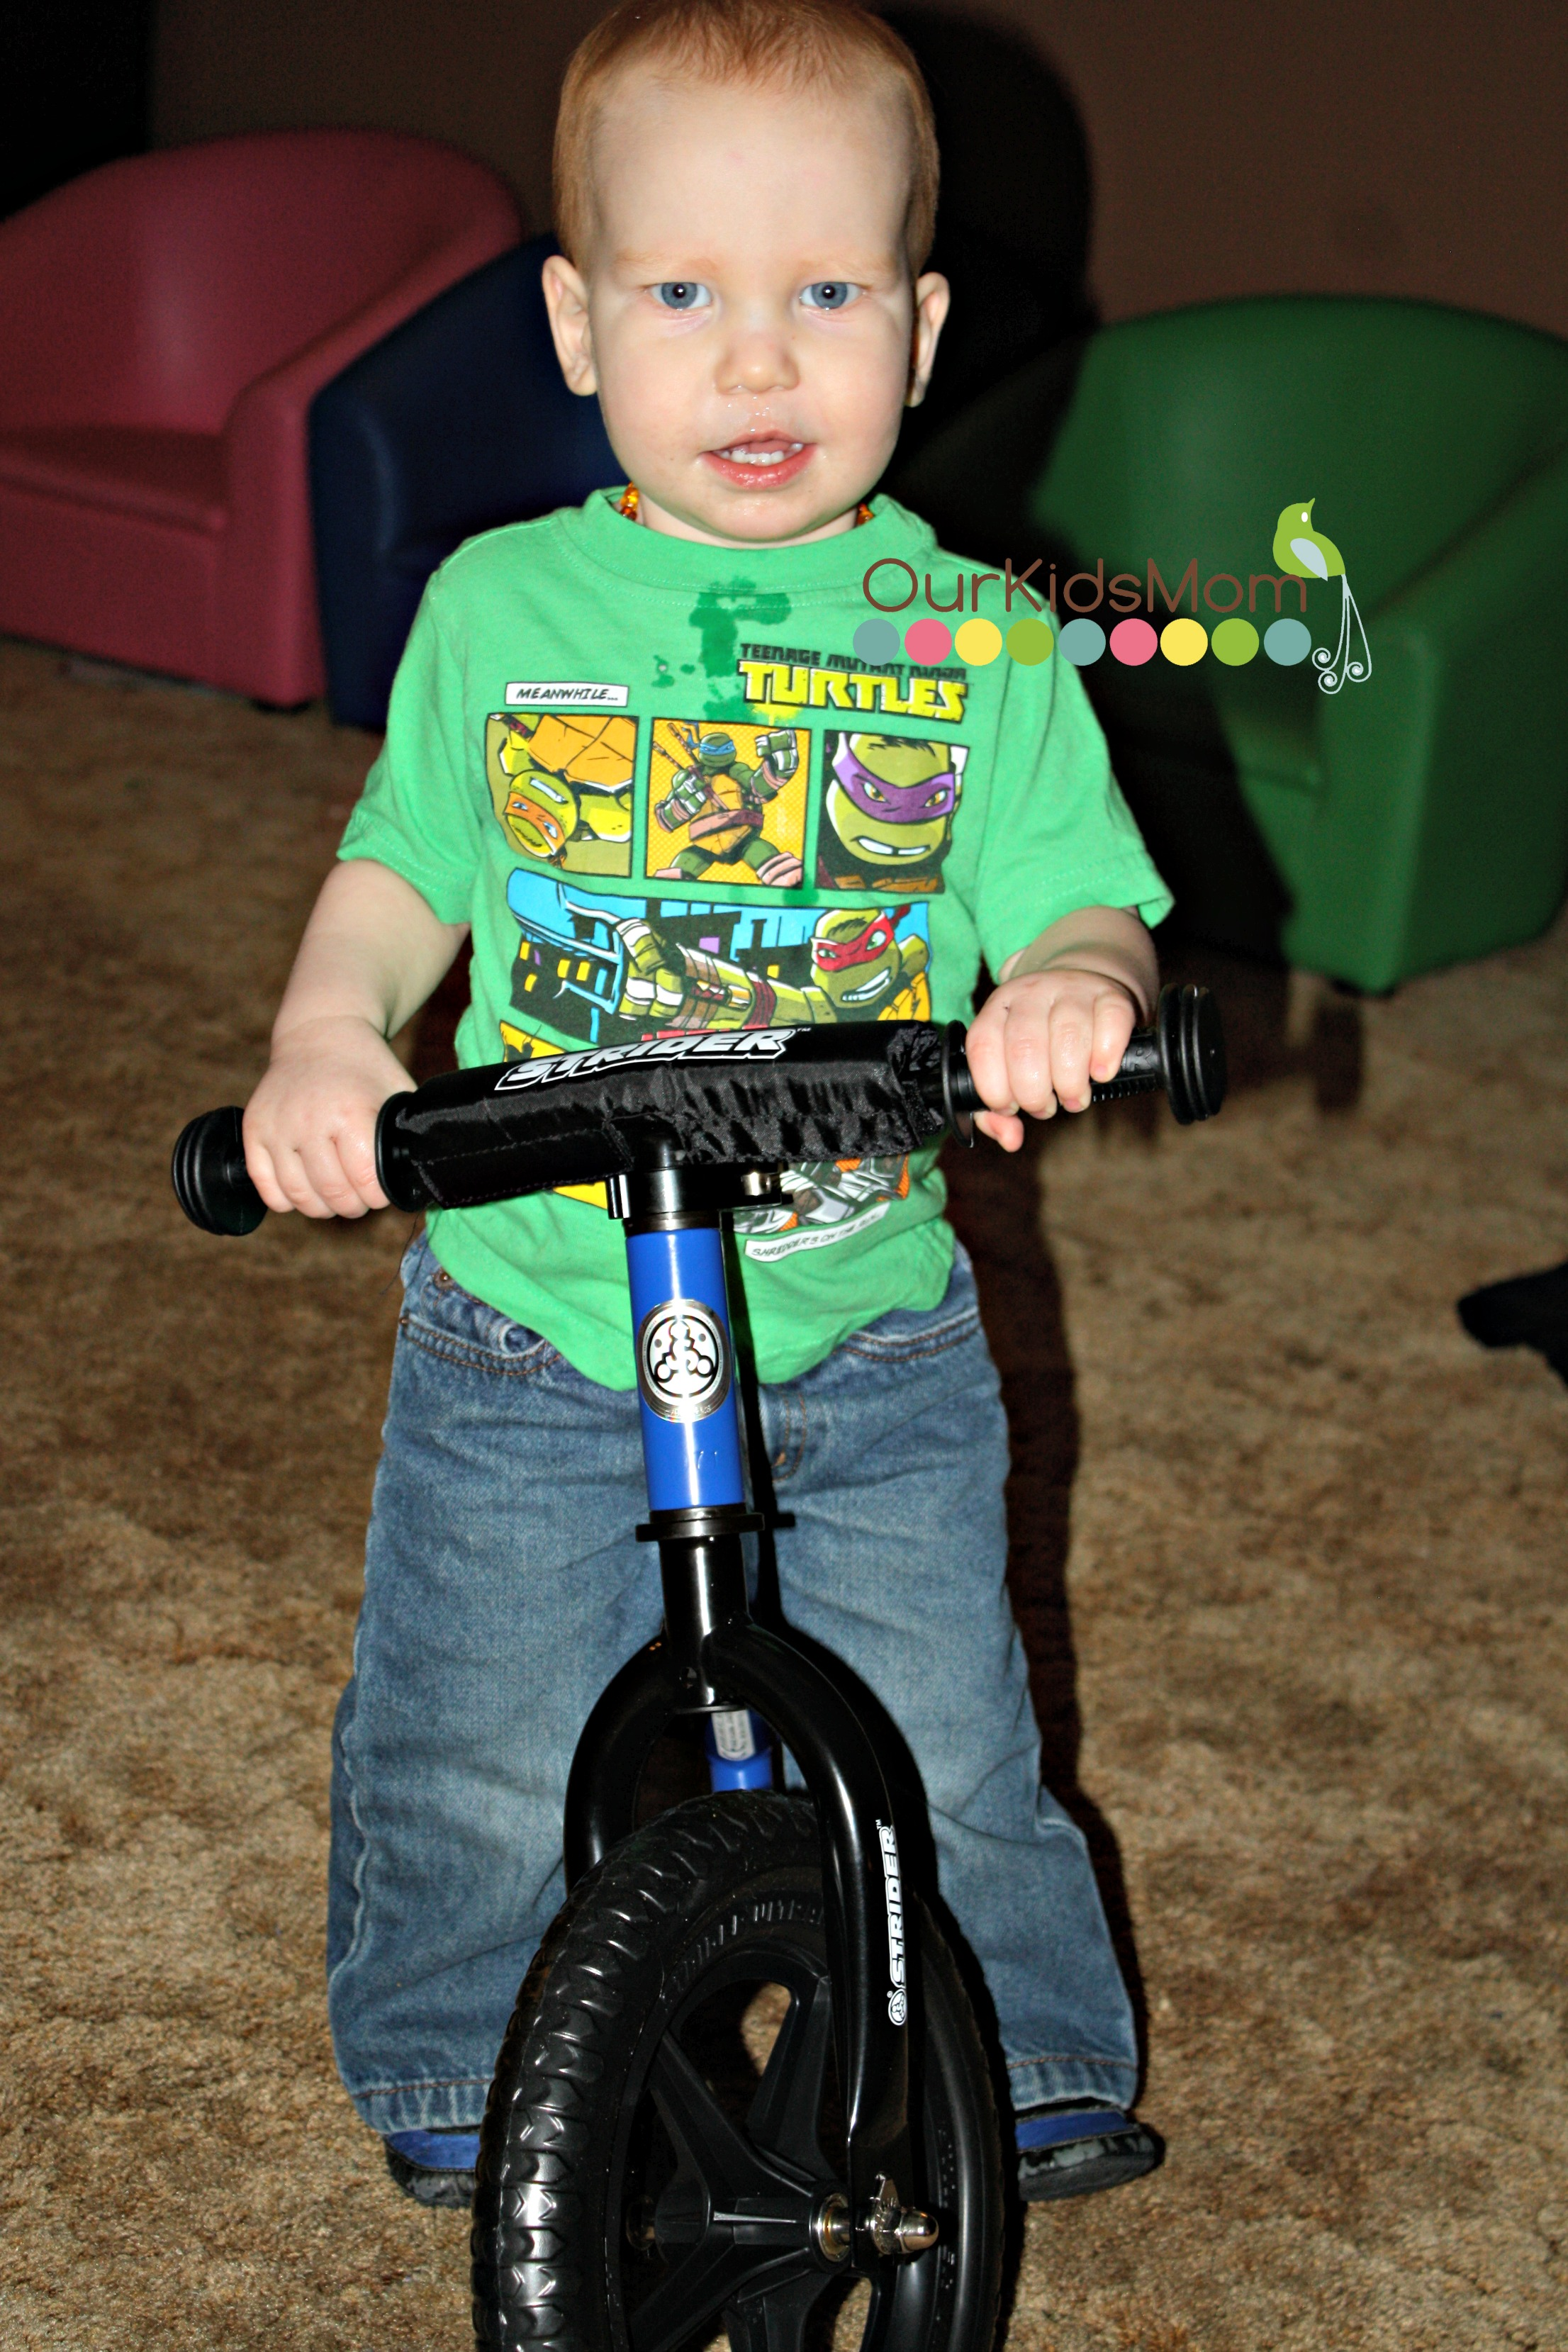 Loves his Bike